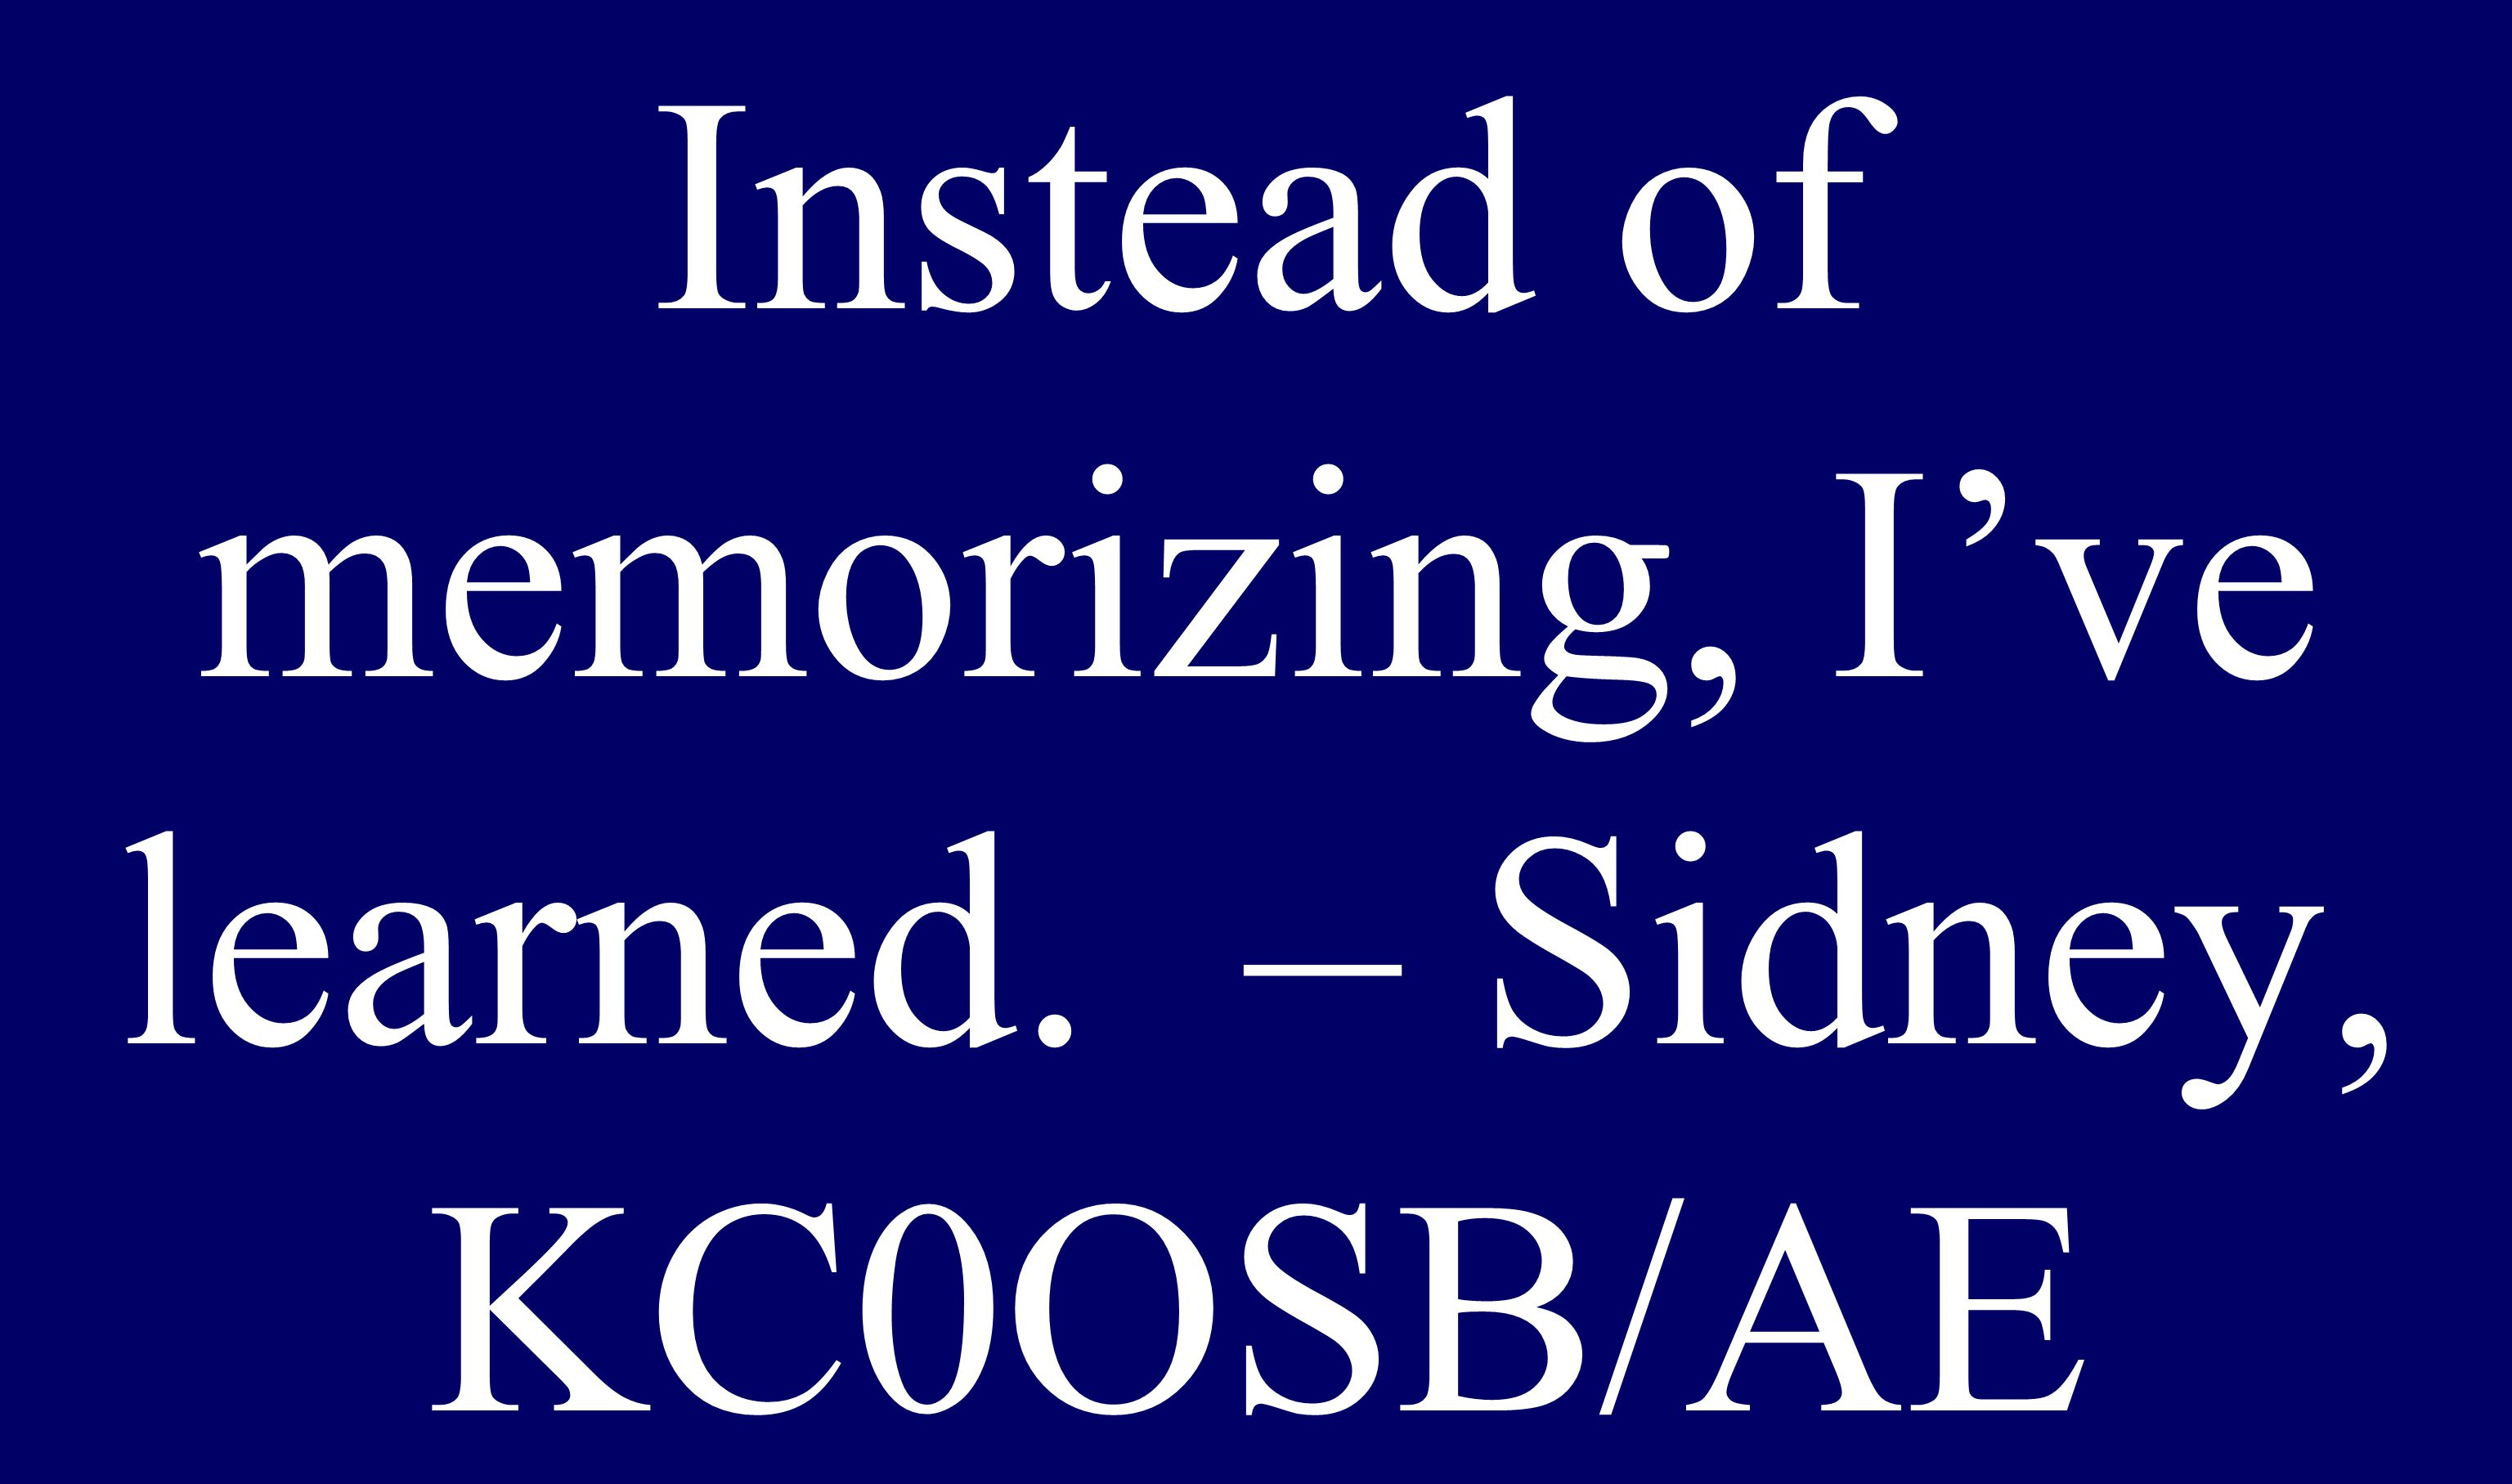 Instead of memorizing, I've learned. – Sidney, KC0OSB/AE